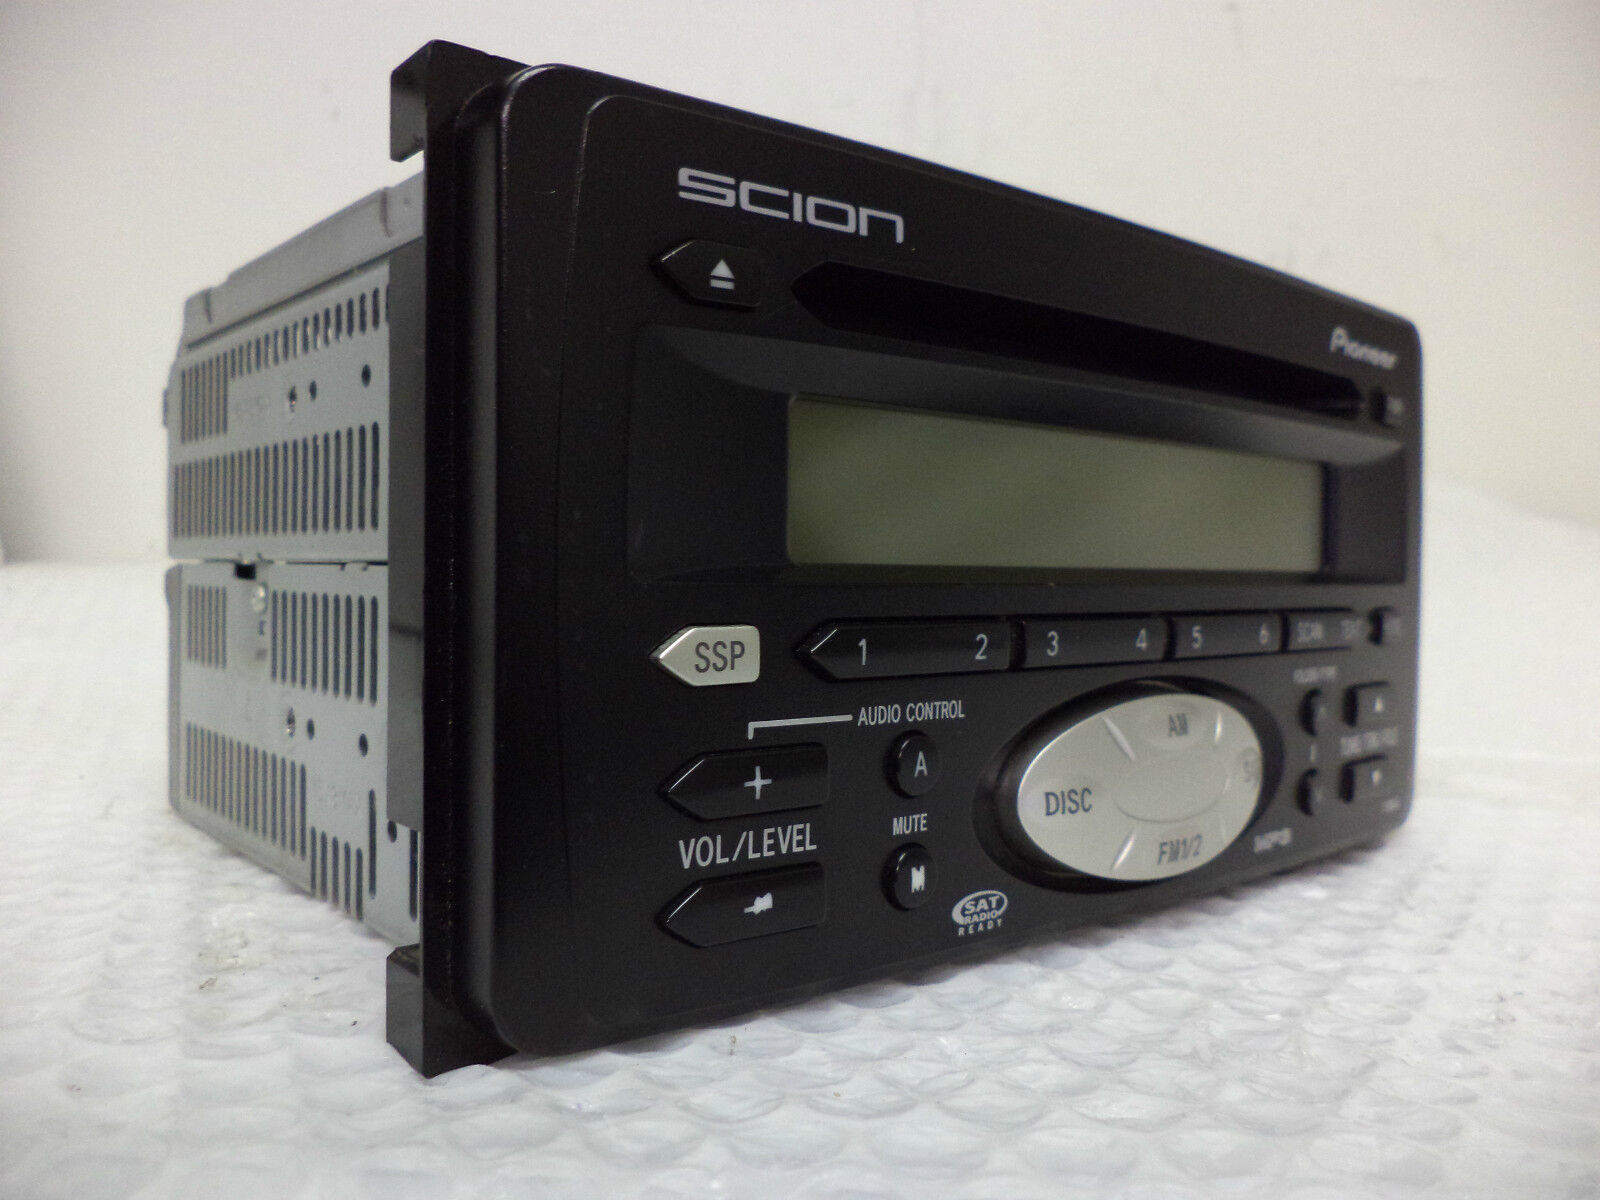 toyota scion tc xa xb celica cd player mp3 radio 86120. Black Bedroom Furniture Sets. Home Design Ideas